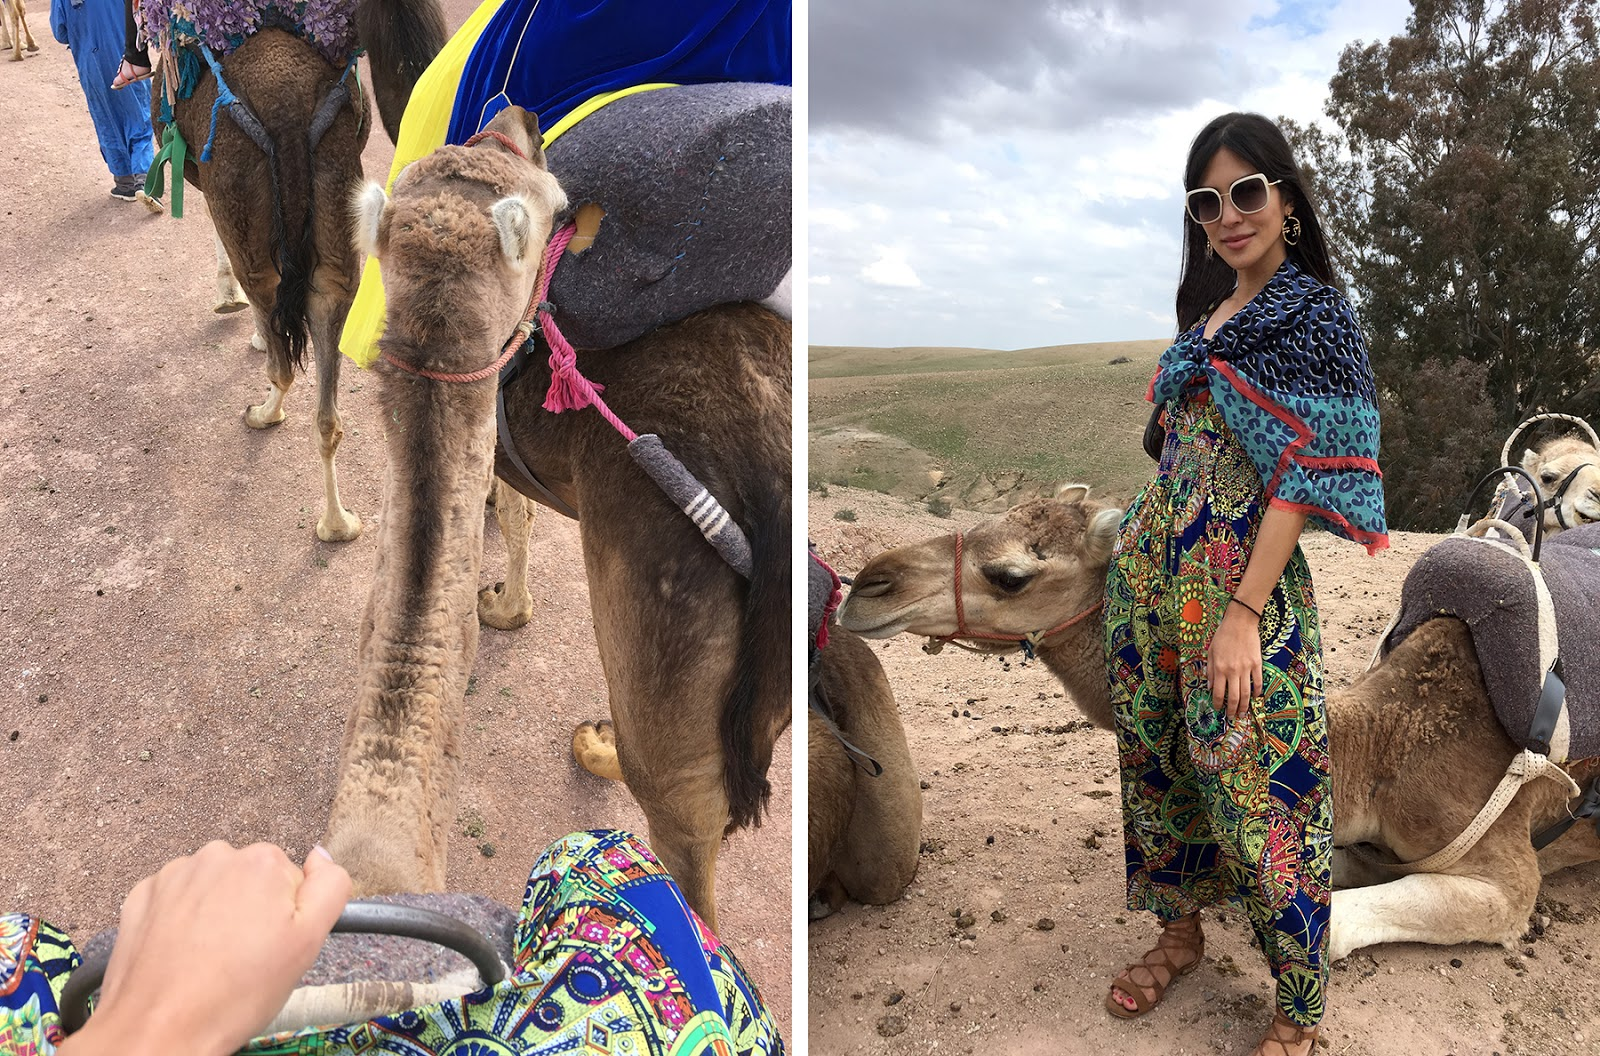 Euriental | luxury travel & style | Photo diary of Marrakech, Morocco, camel riding in desert